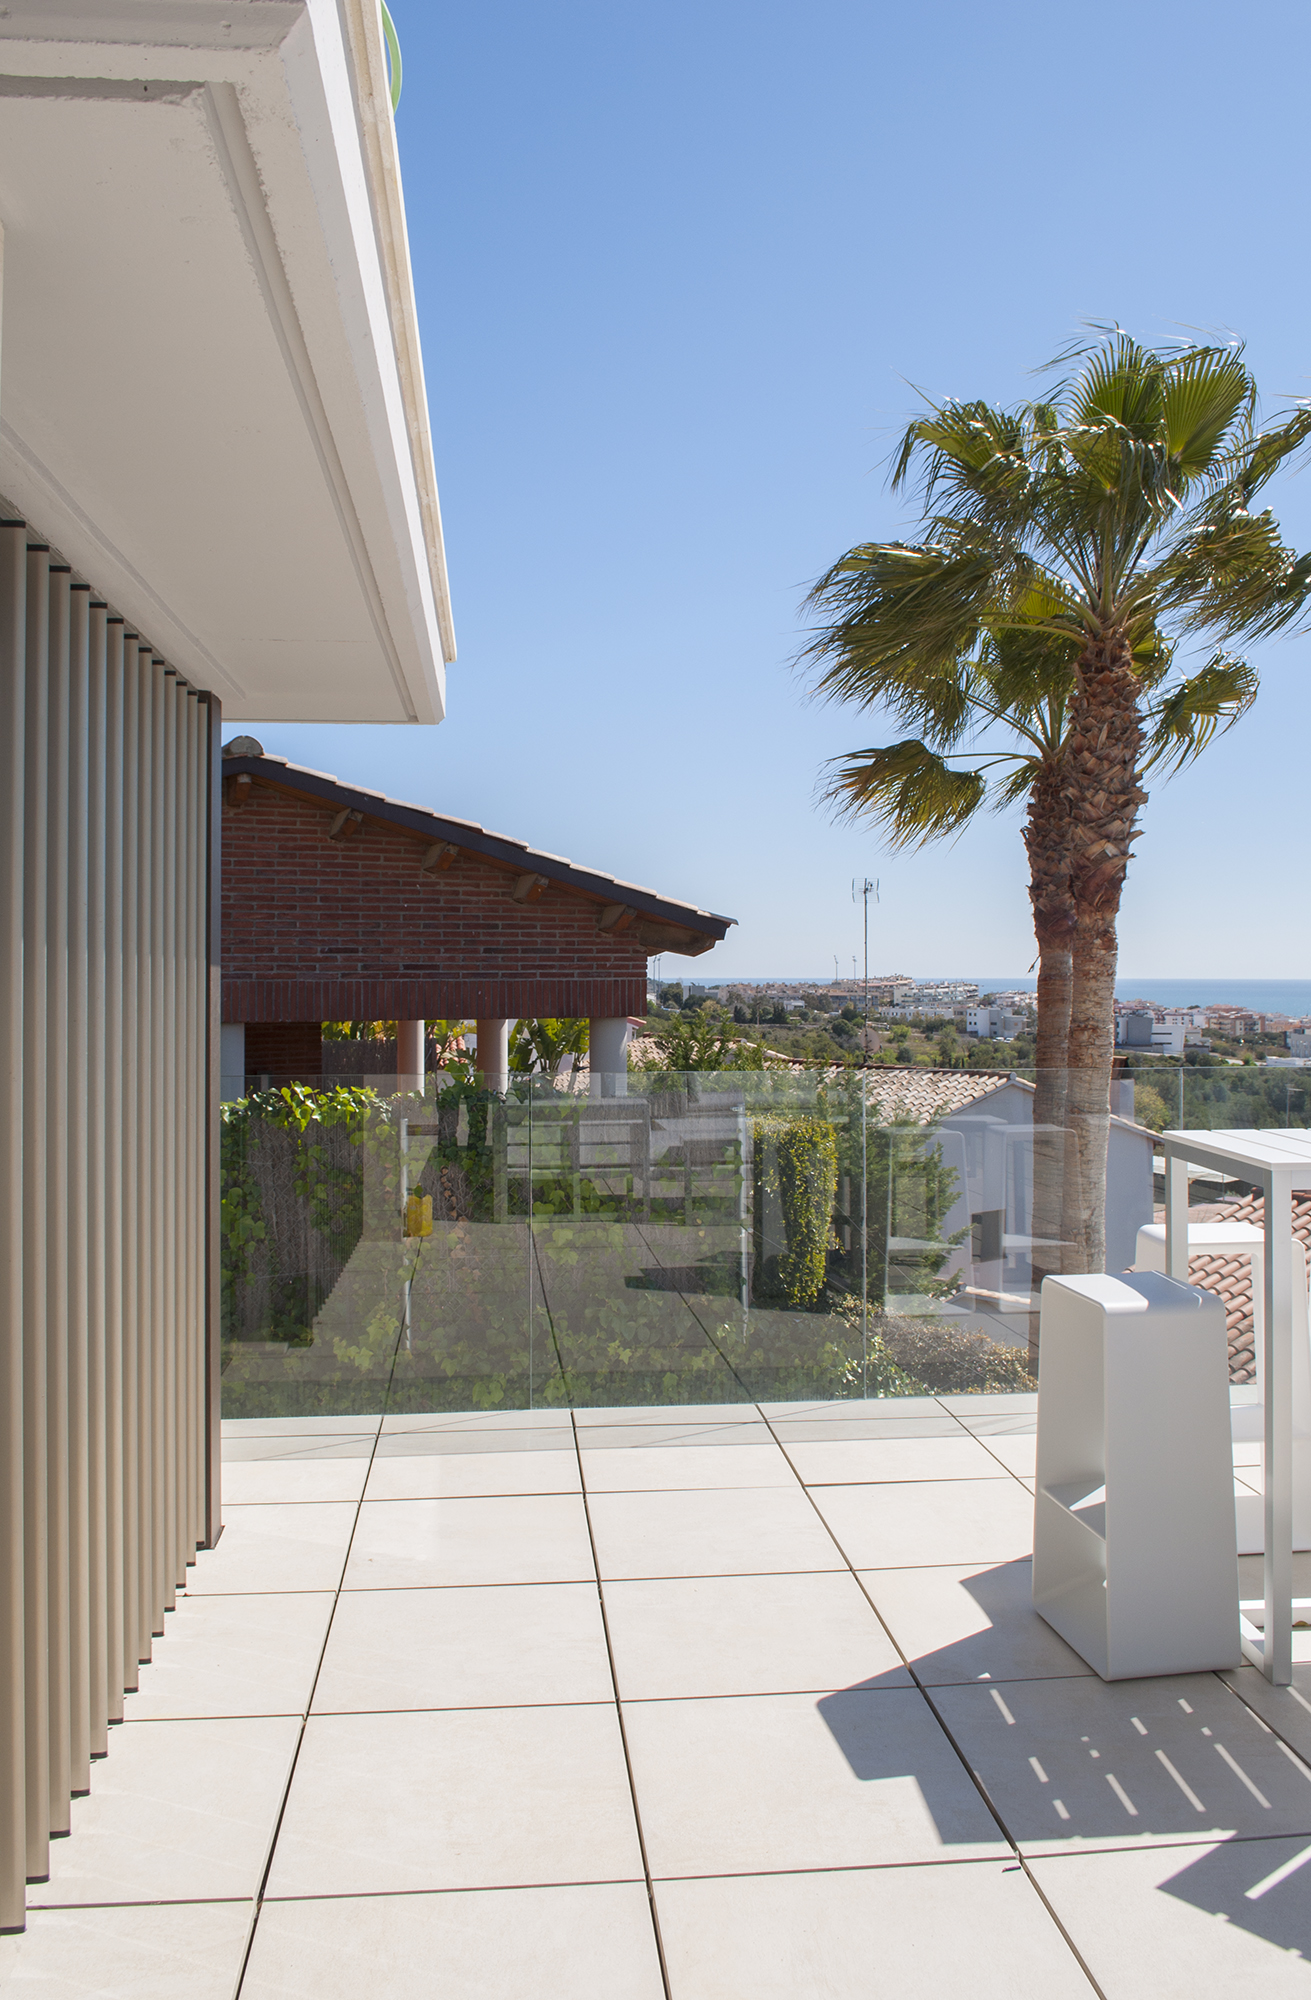 12-b-rardo-architects-houses-in-sitges-sea-view-terrace